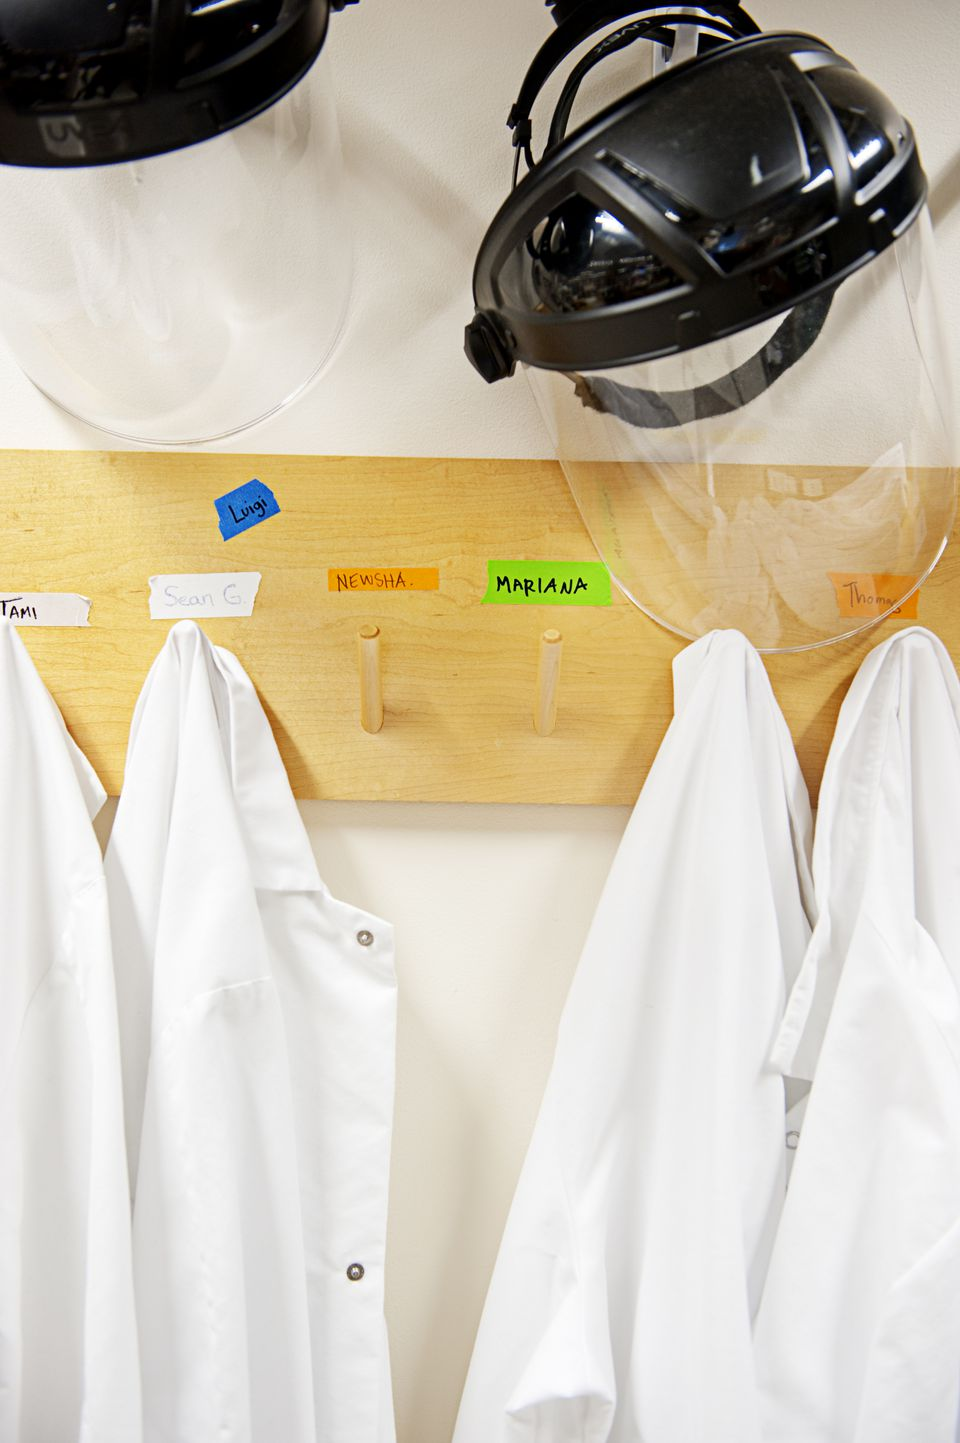 Analyzing sewage requires gear for biohazard protection.